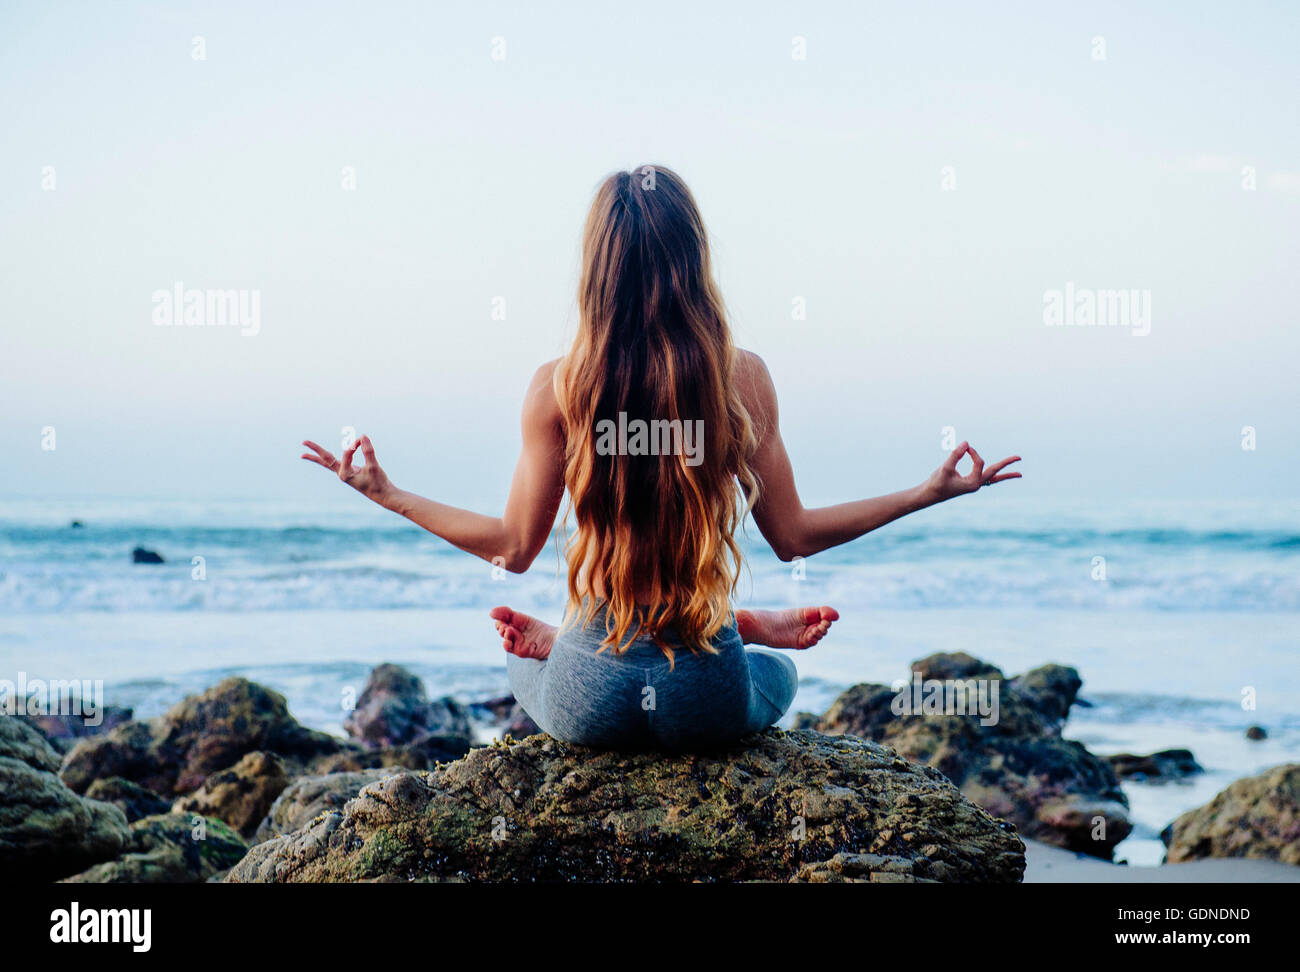 Rear view of young woman with long hair practicing lotus yoga pose on rocks at beach, Los Angeles, California, USA - Stock Image